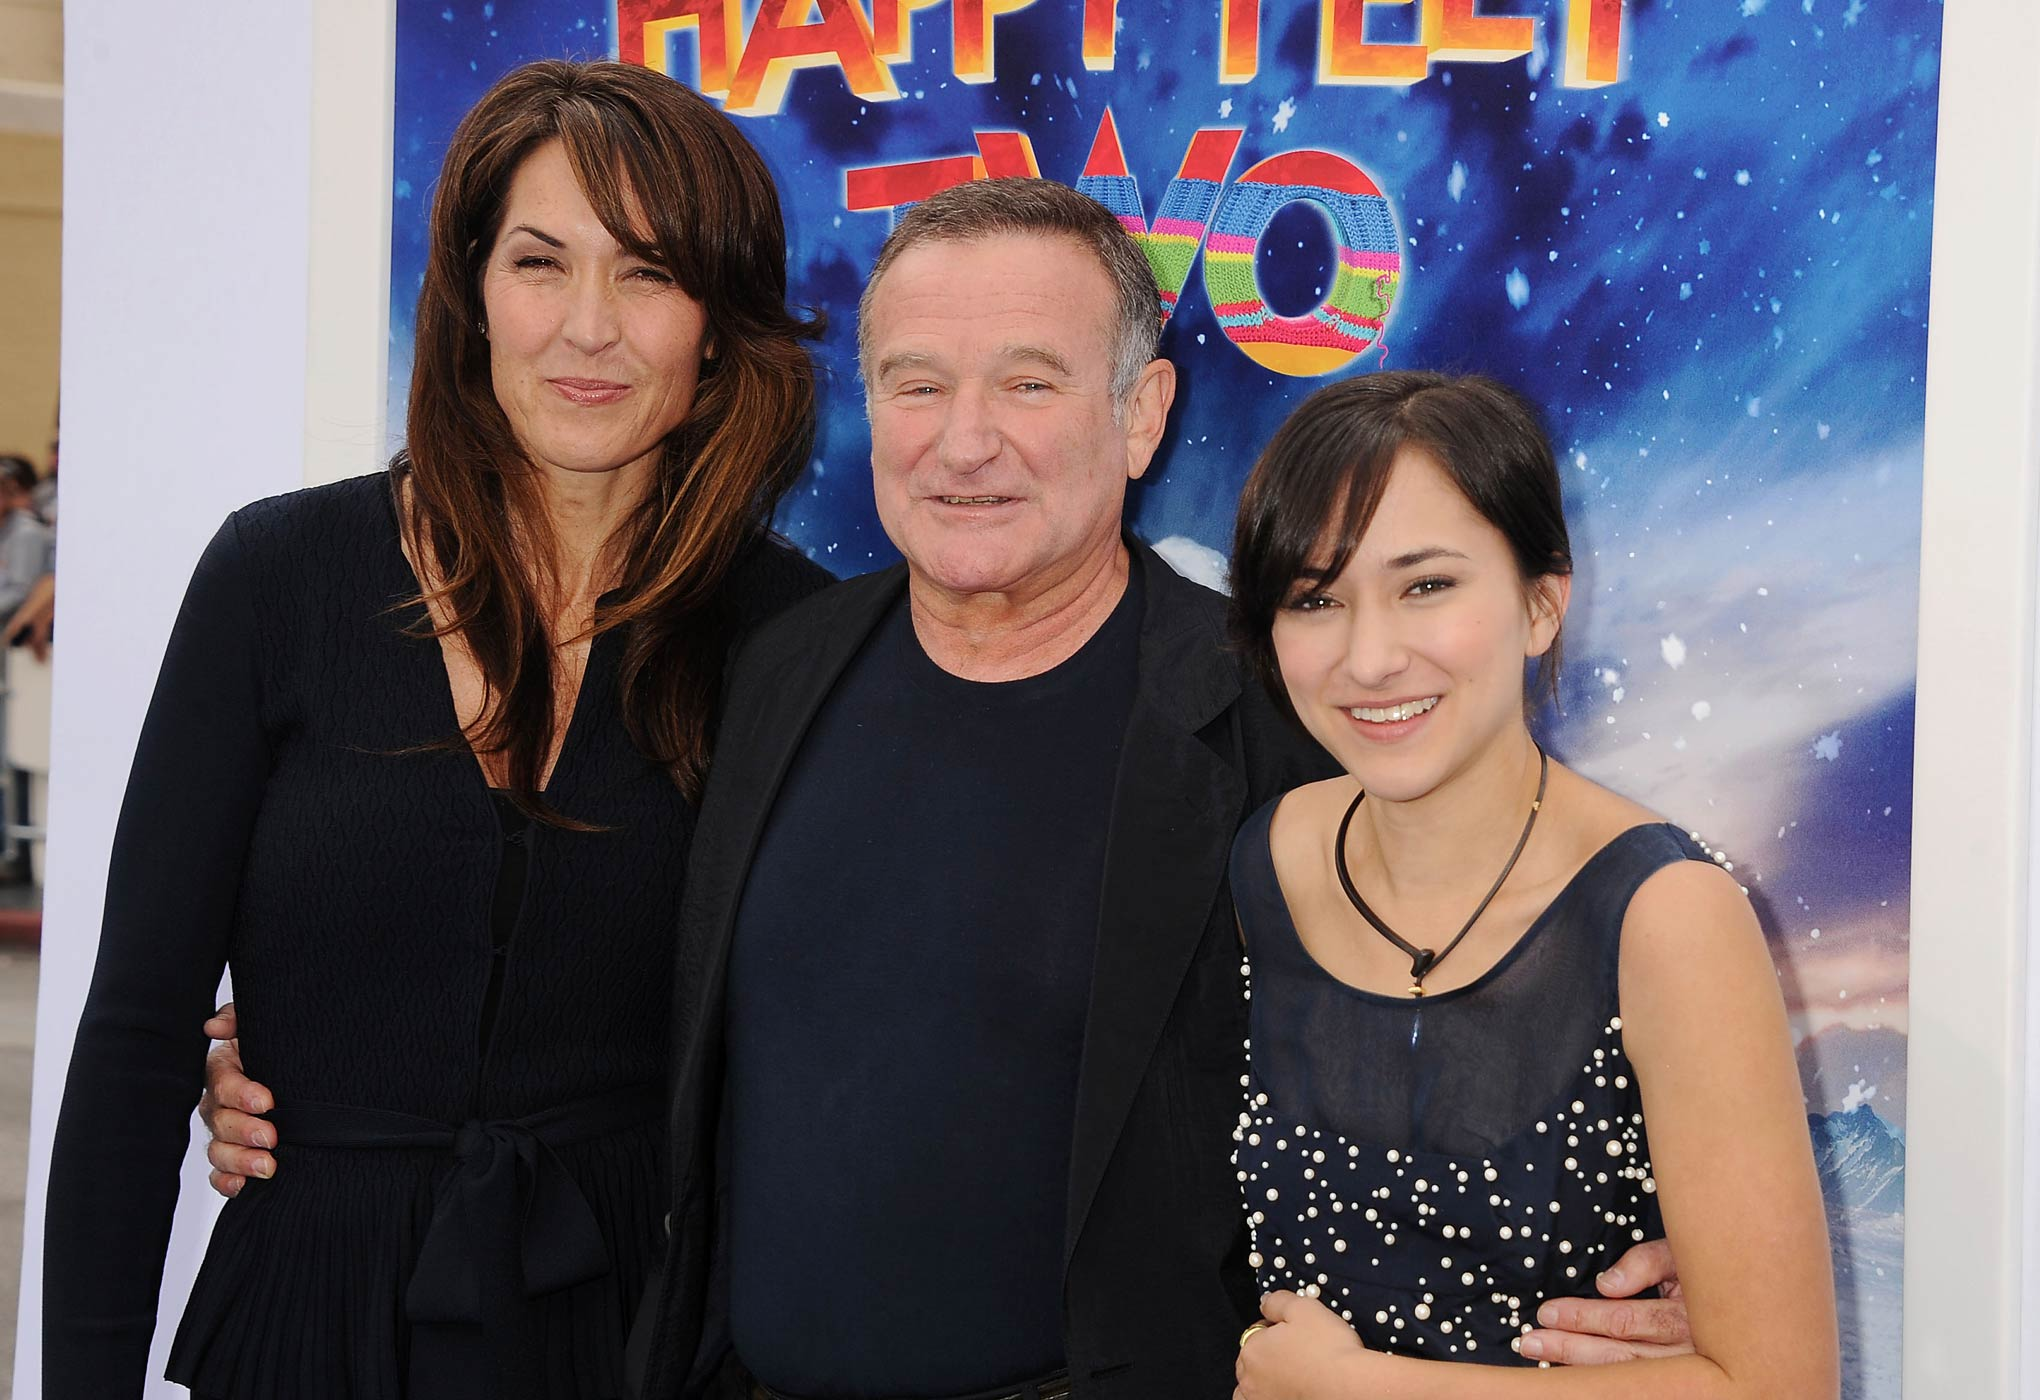 Susan Williams, Robin Williams and Zelda Williams attend the Happy Feet Two Los Angeles Premiere at Grauman's Chinese Theatre on Nov. 13, 2011 in Hollywood, Calif.